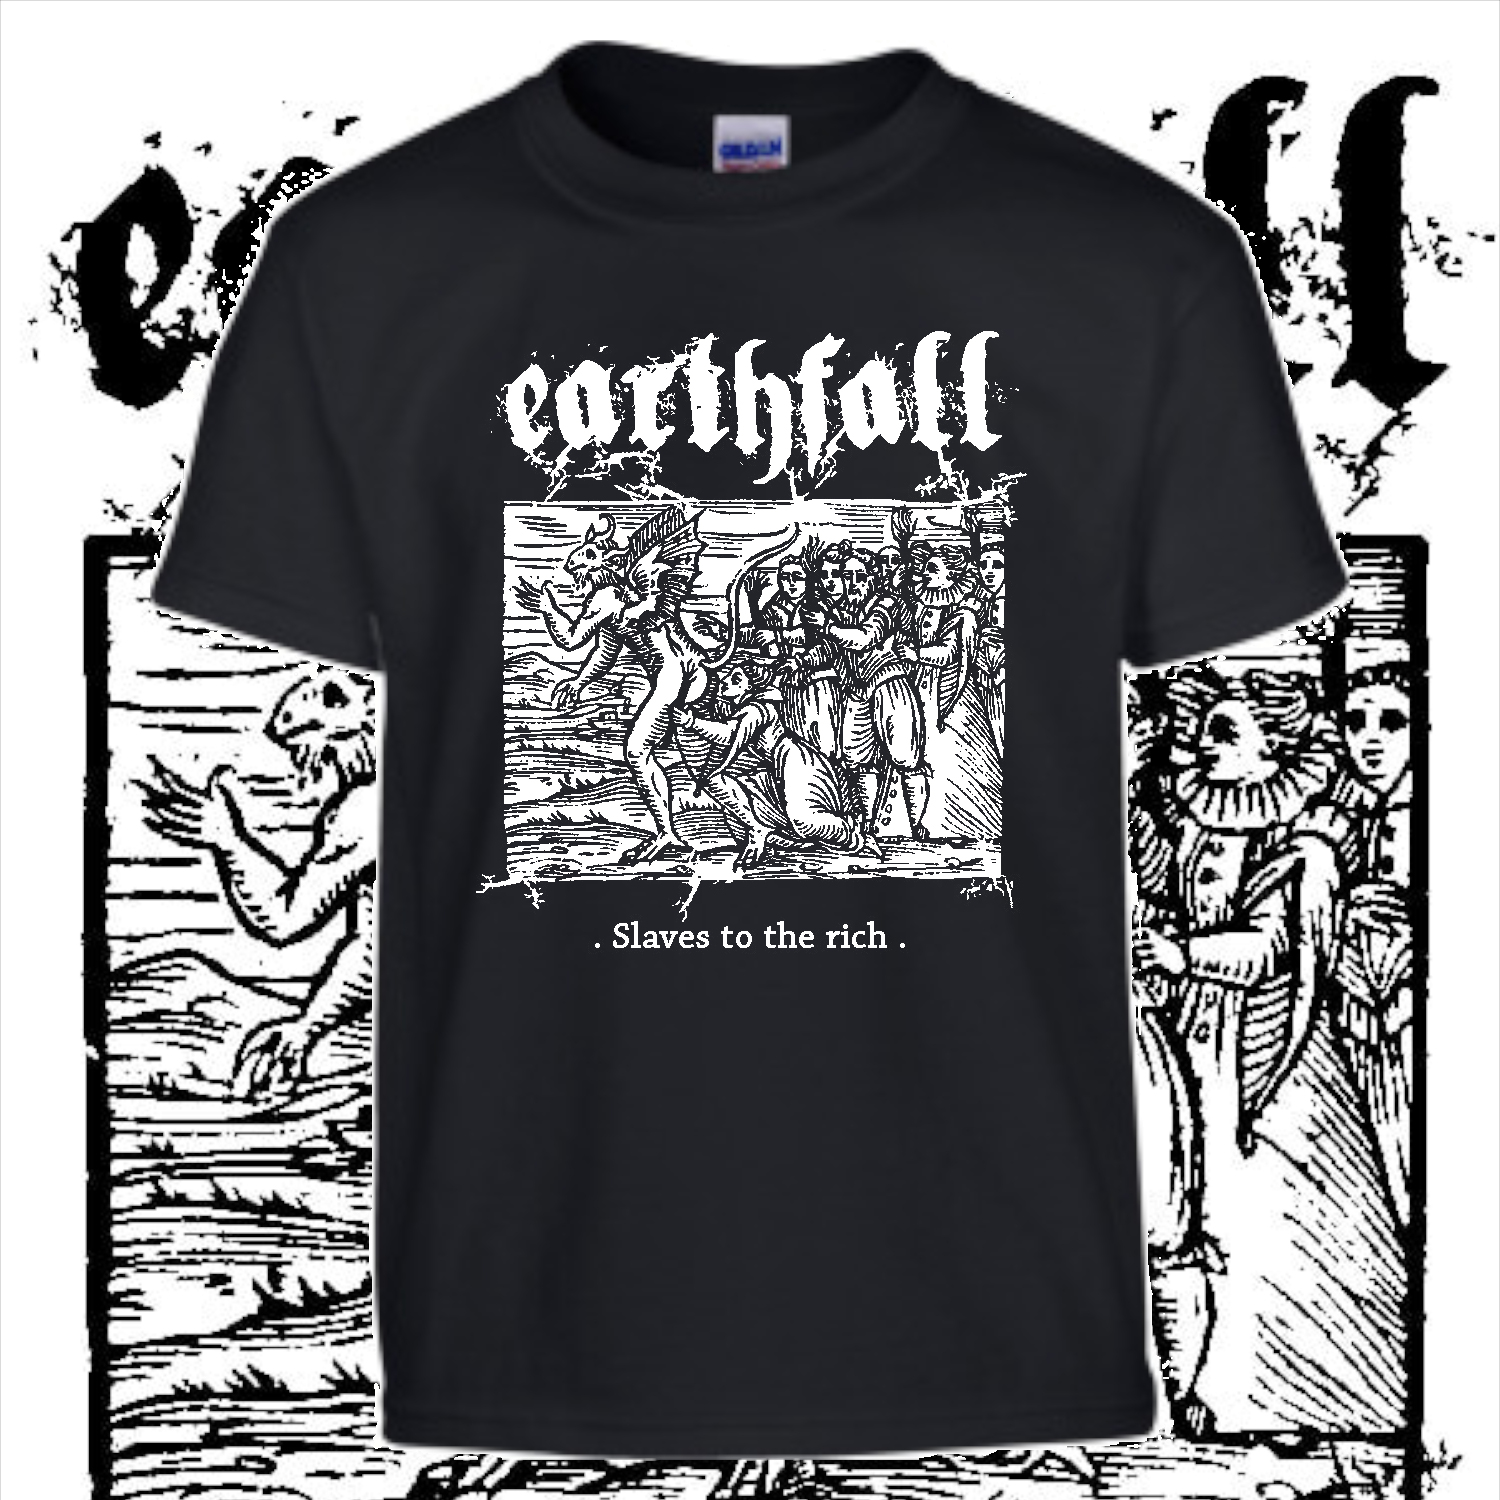 new earthfall shirt white on black